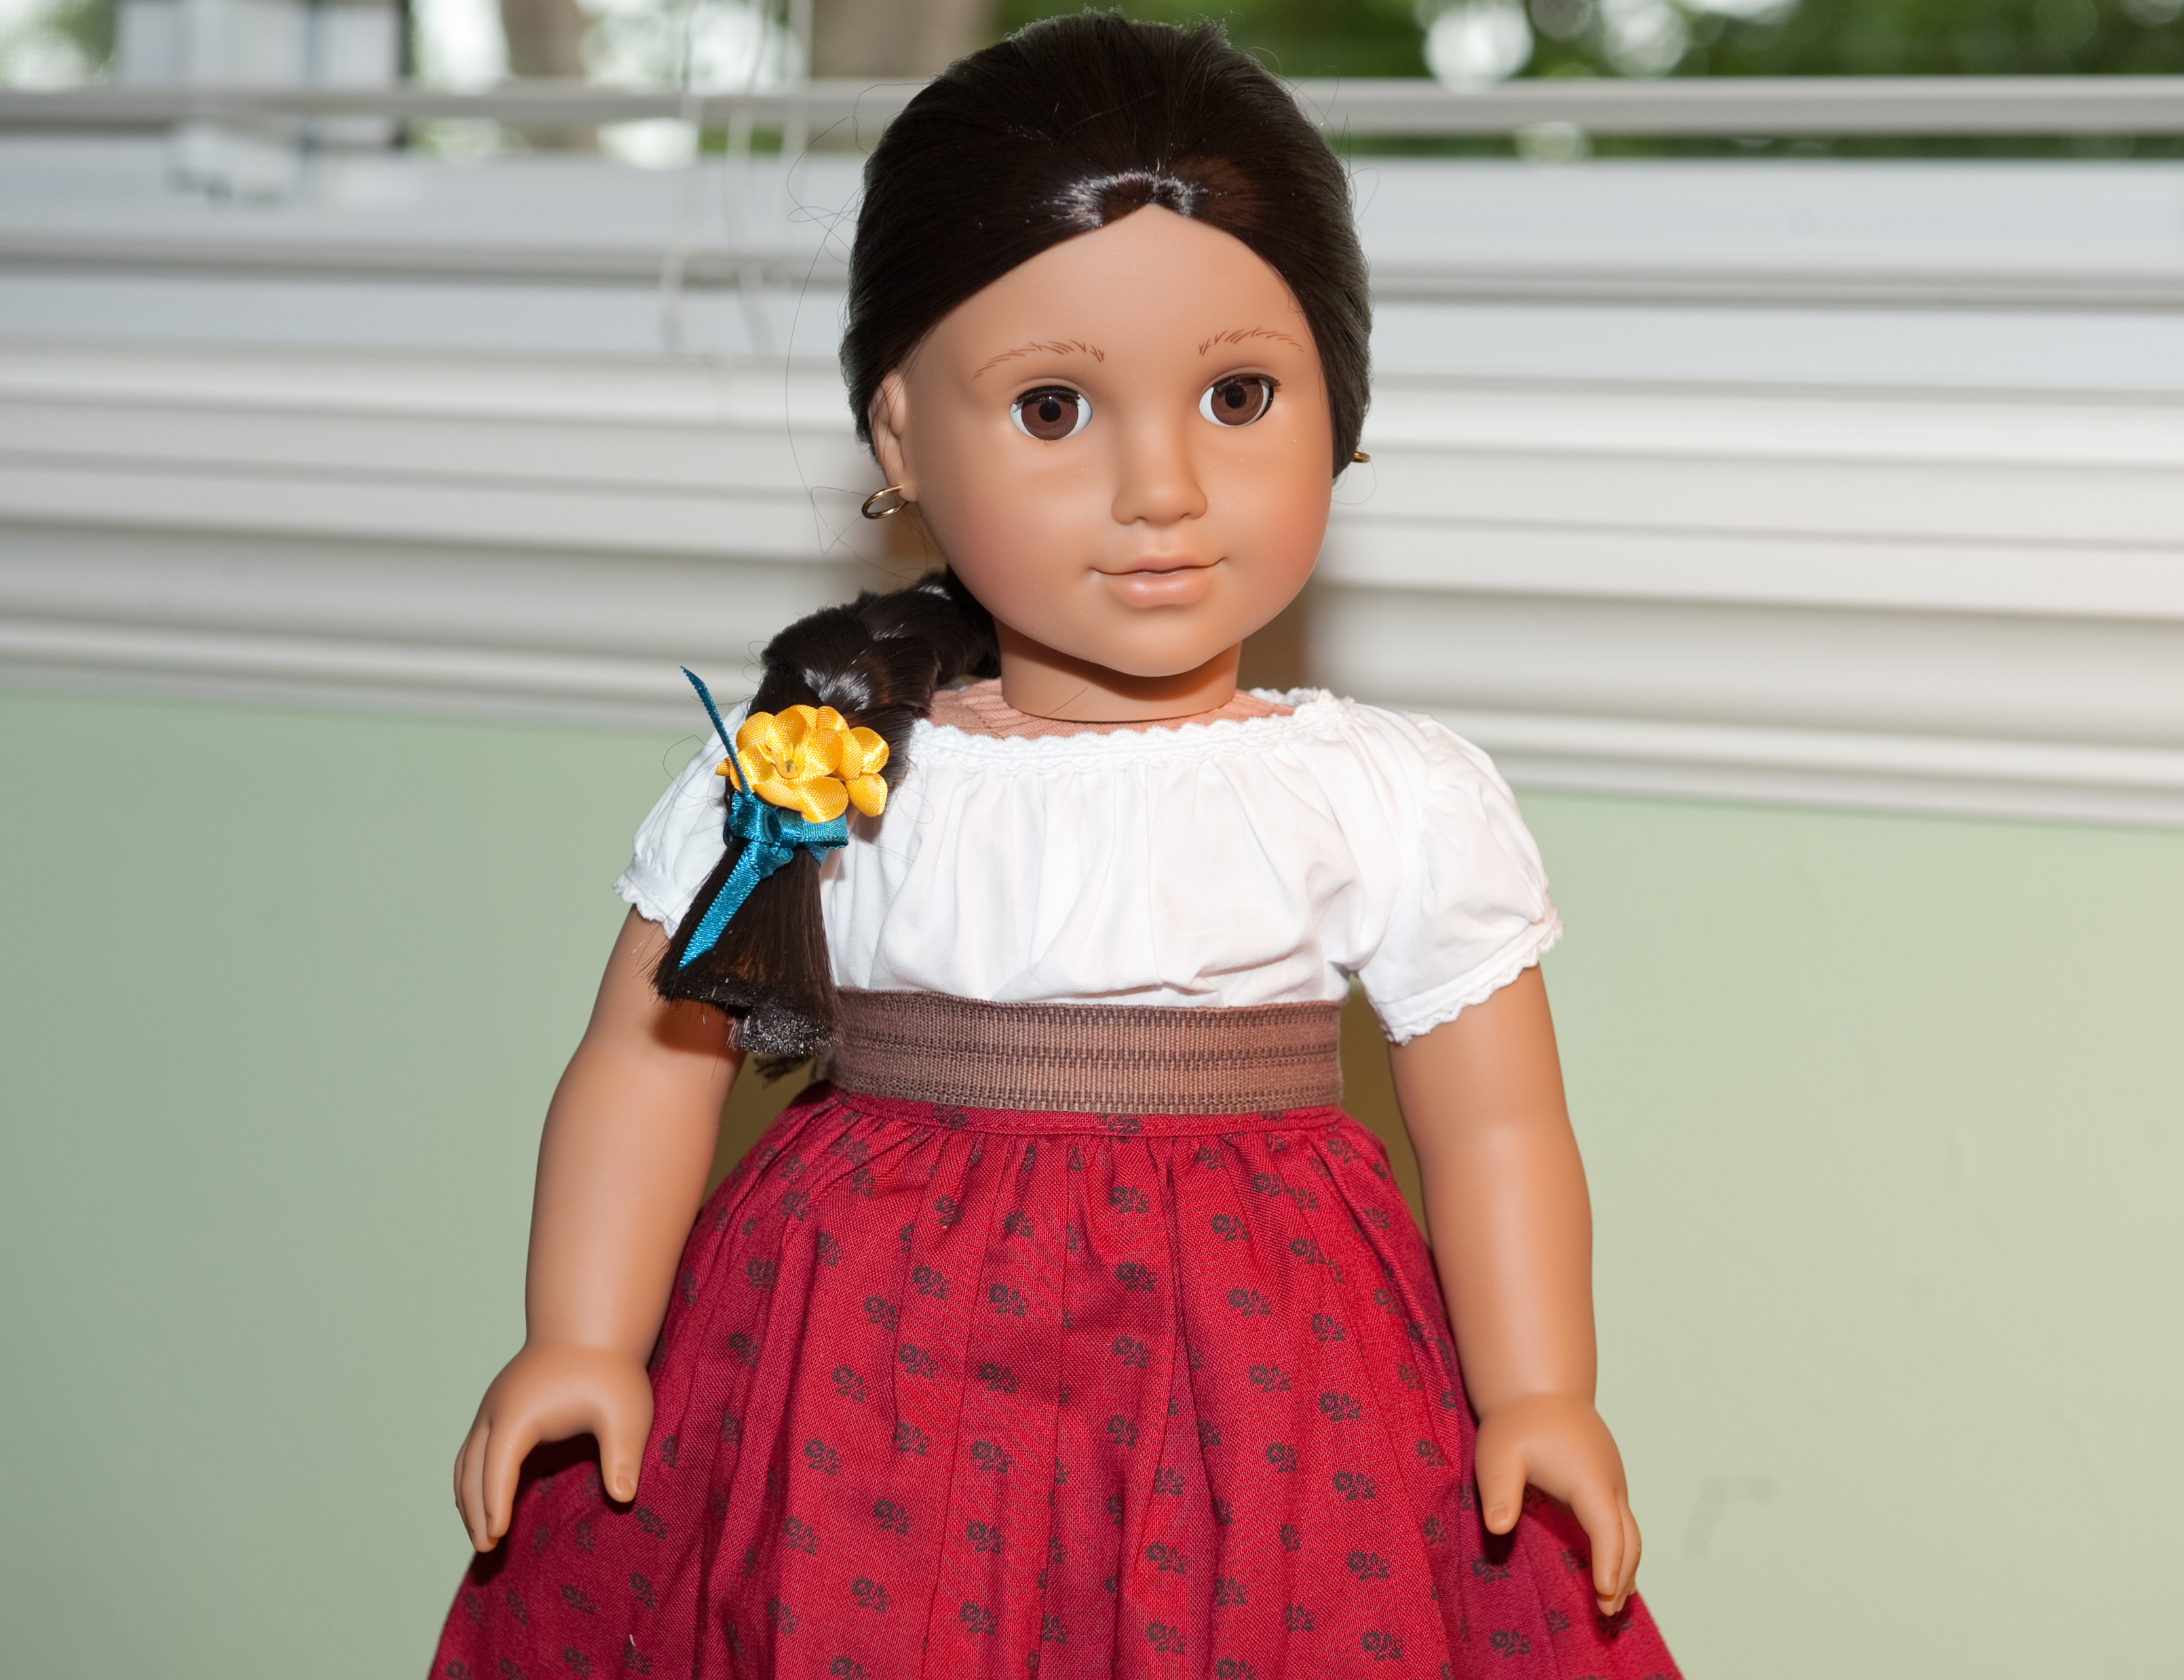 review american girl s josefina doll makes a great cultural gift for hispanic heritage and beyond. Black Bedroom Furniture Sets. Home Design Ideas